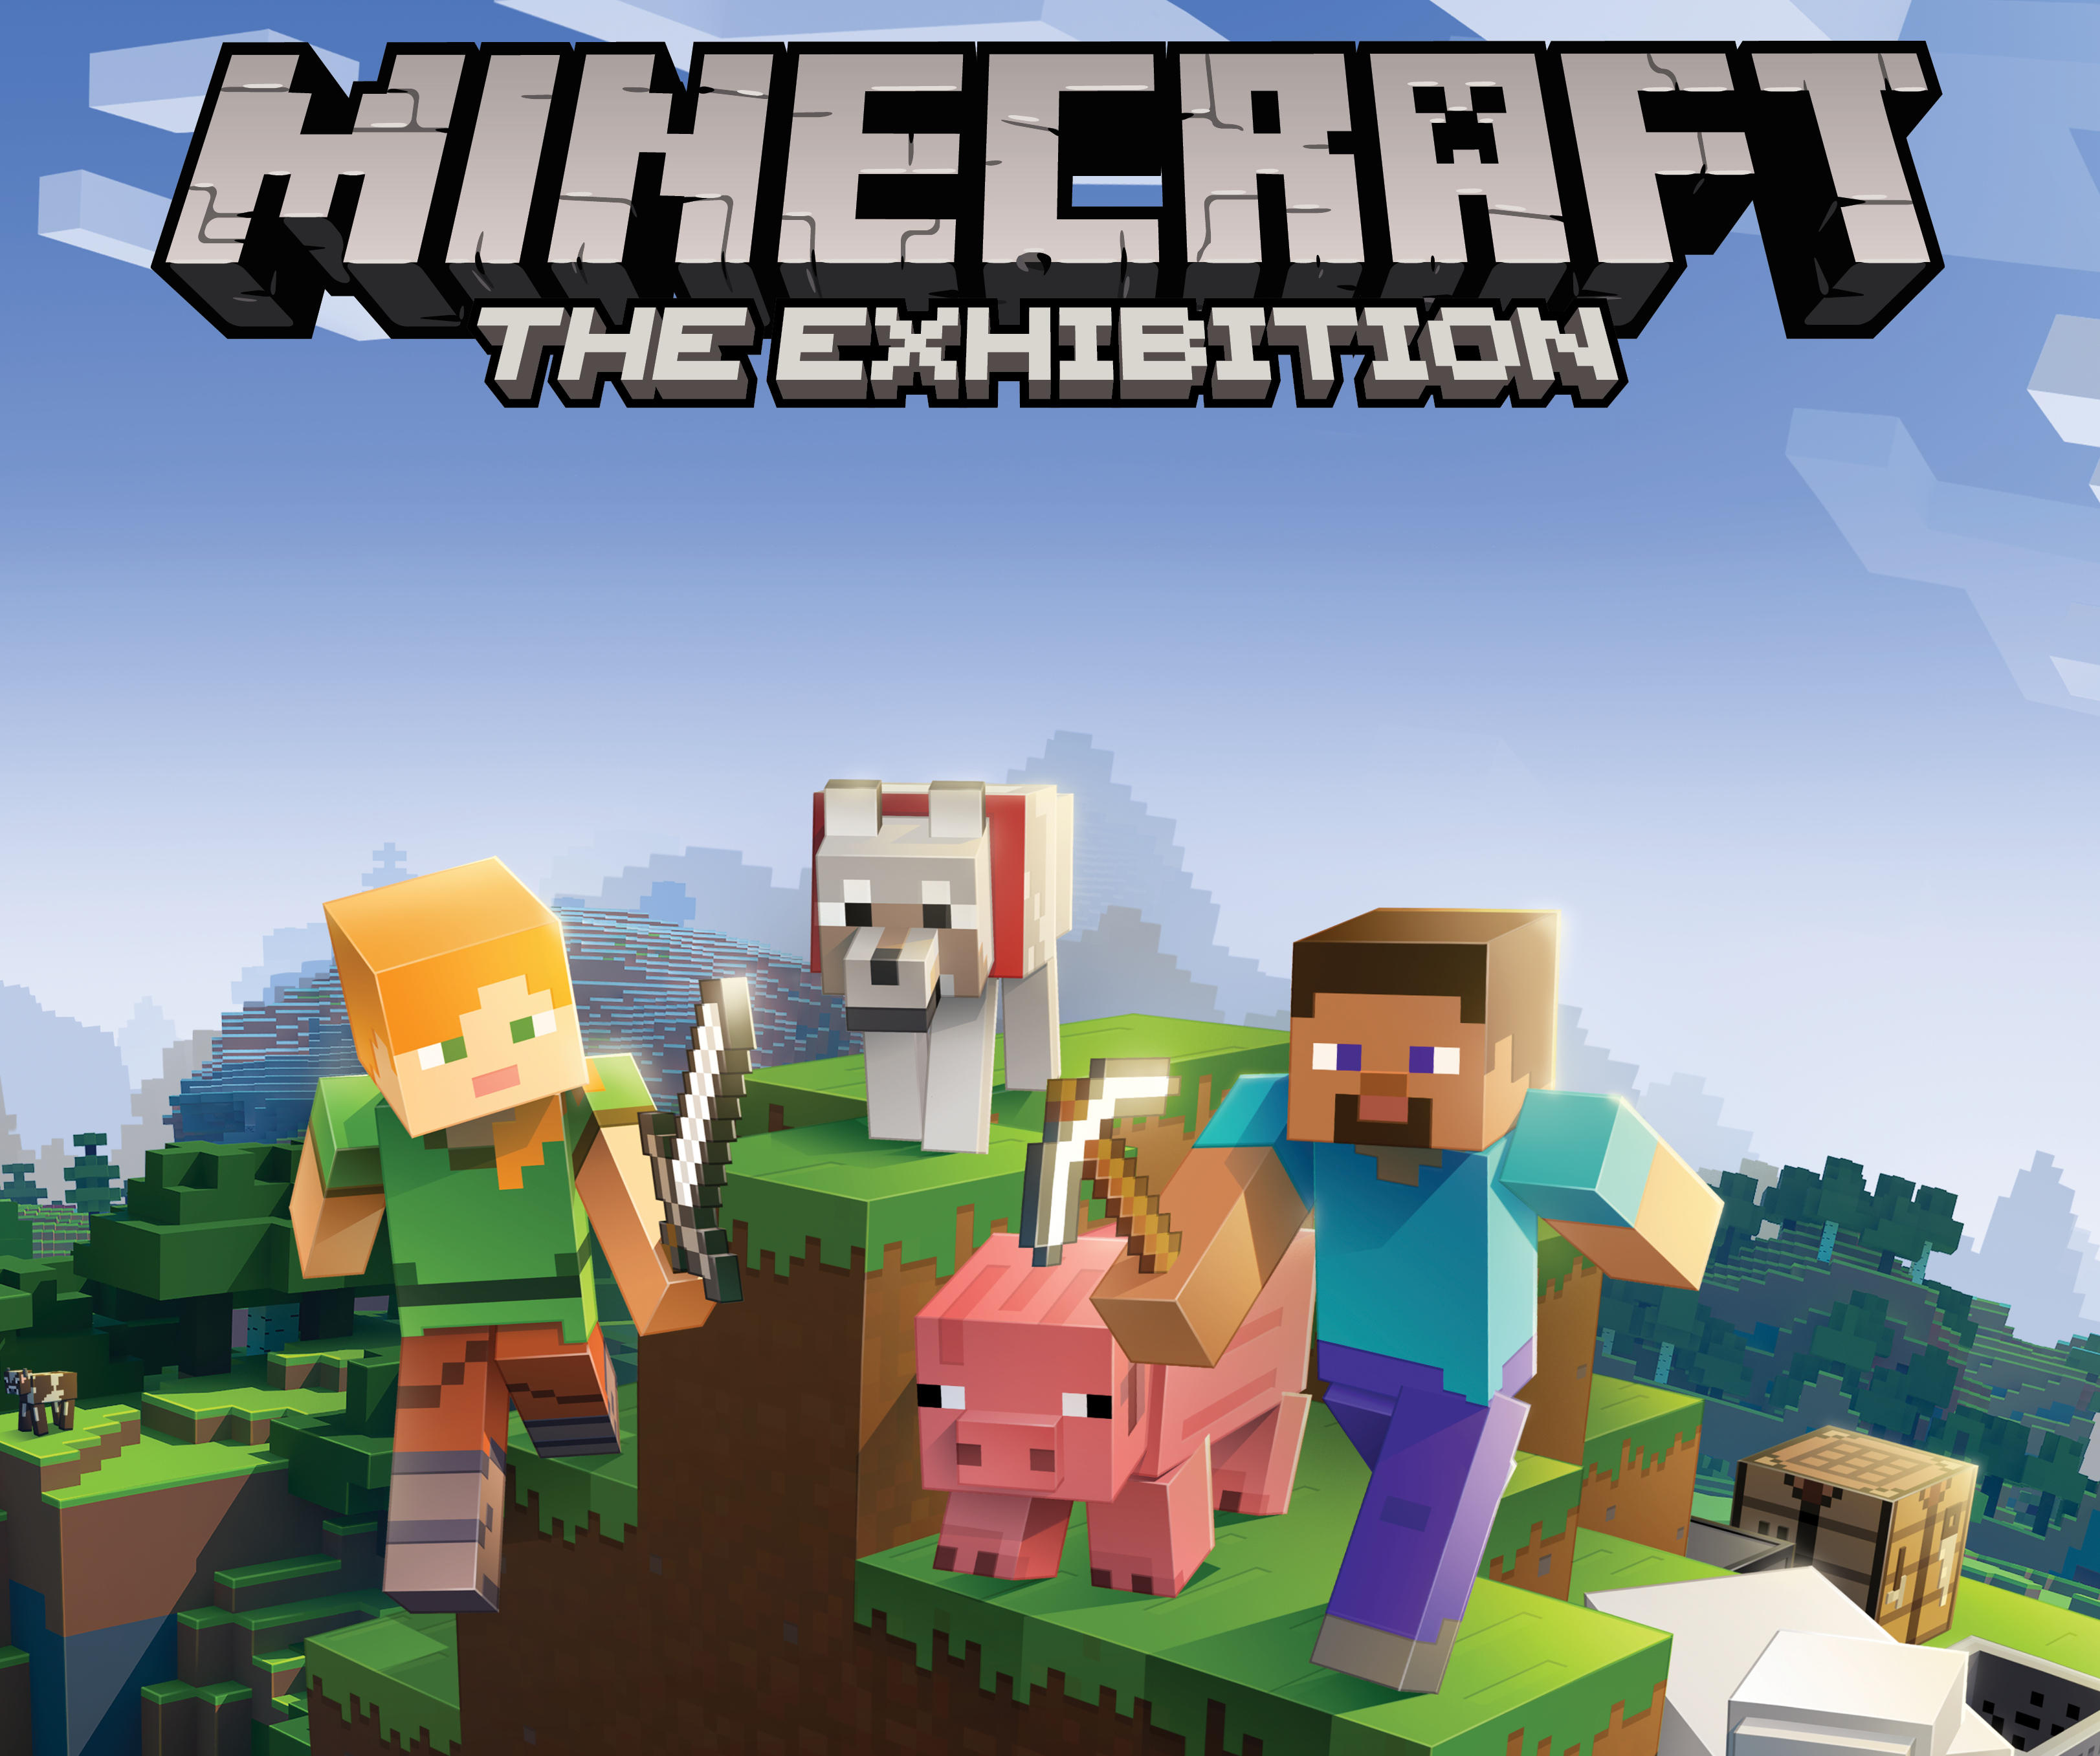 Block by block, ambitious new 'Minecraft: The Exhibition